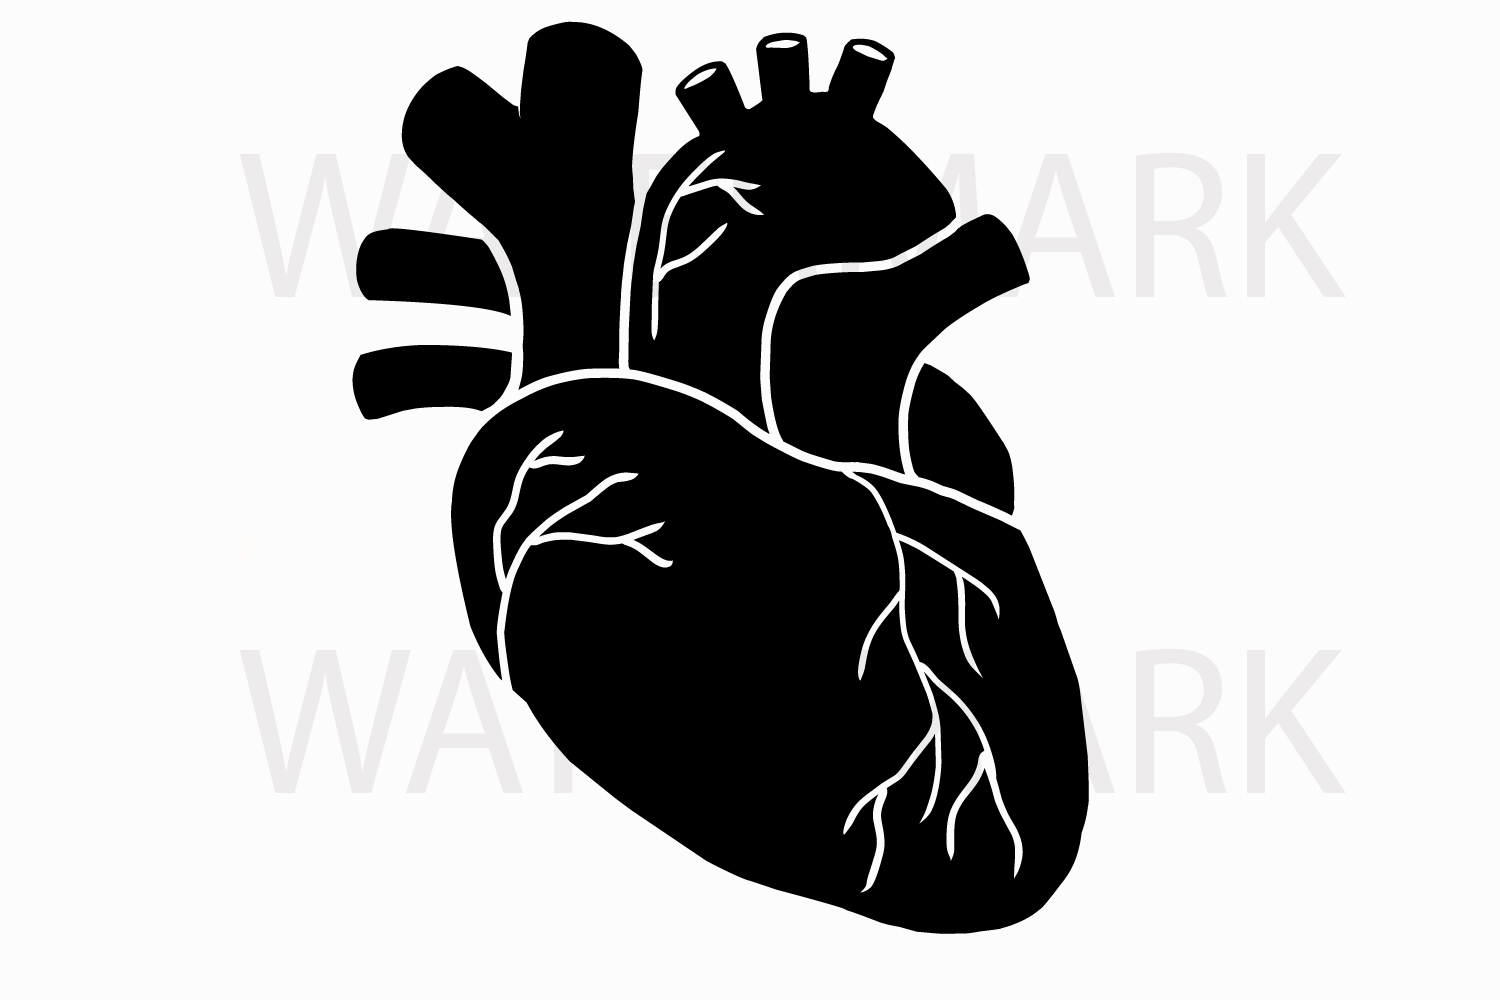 Human Real Heart in Black - SVG/JPG/PNG Hand Drawing example image 1